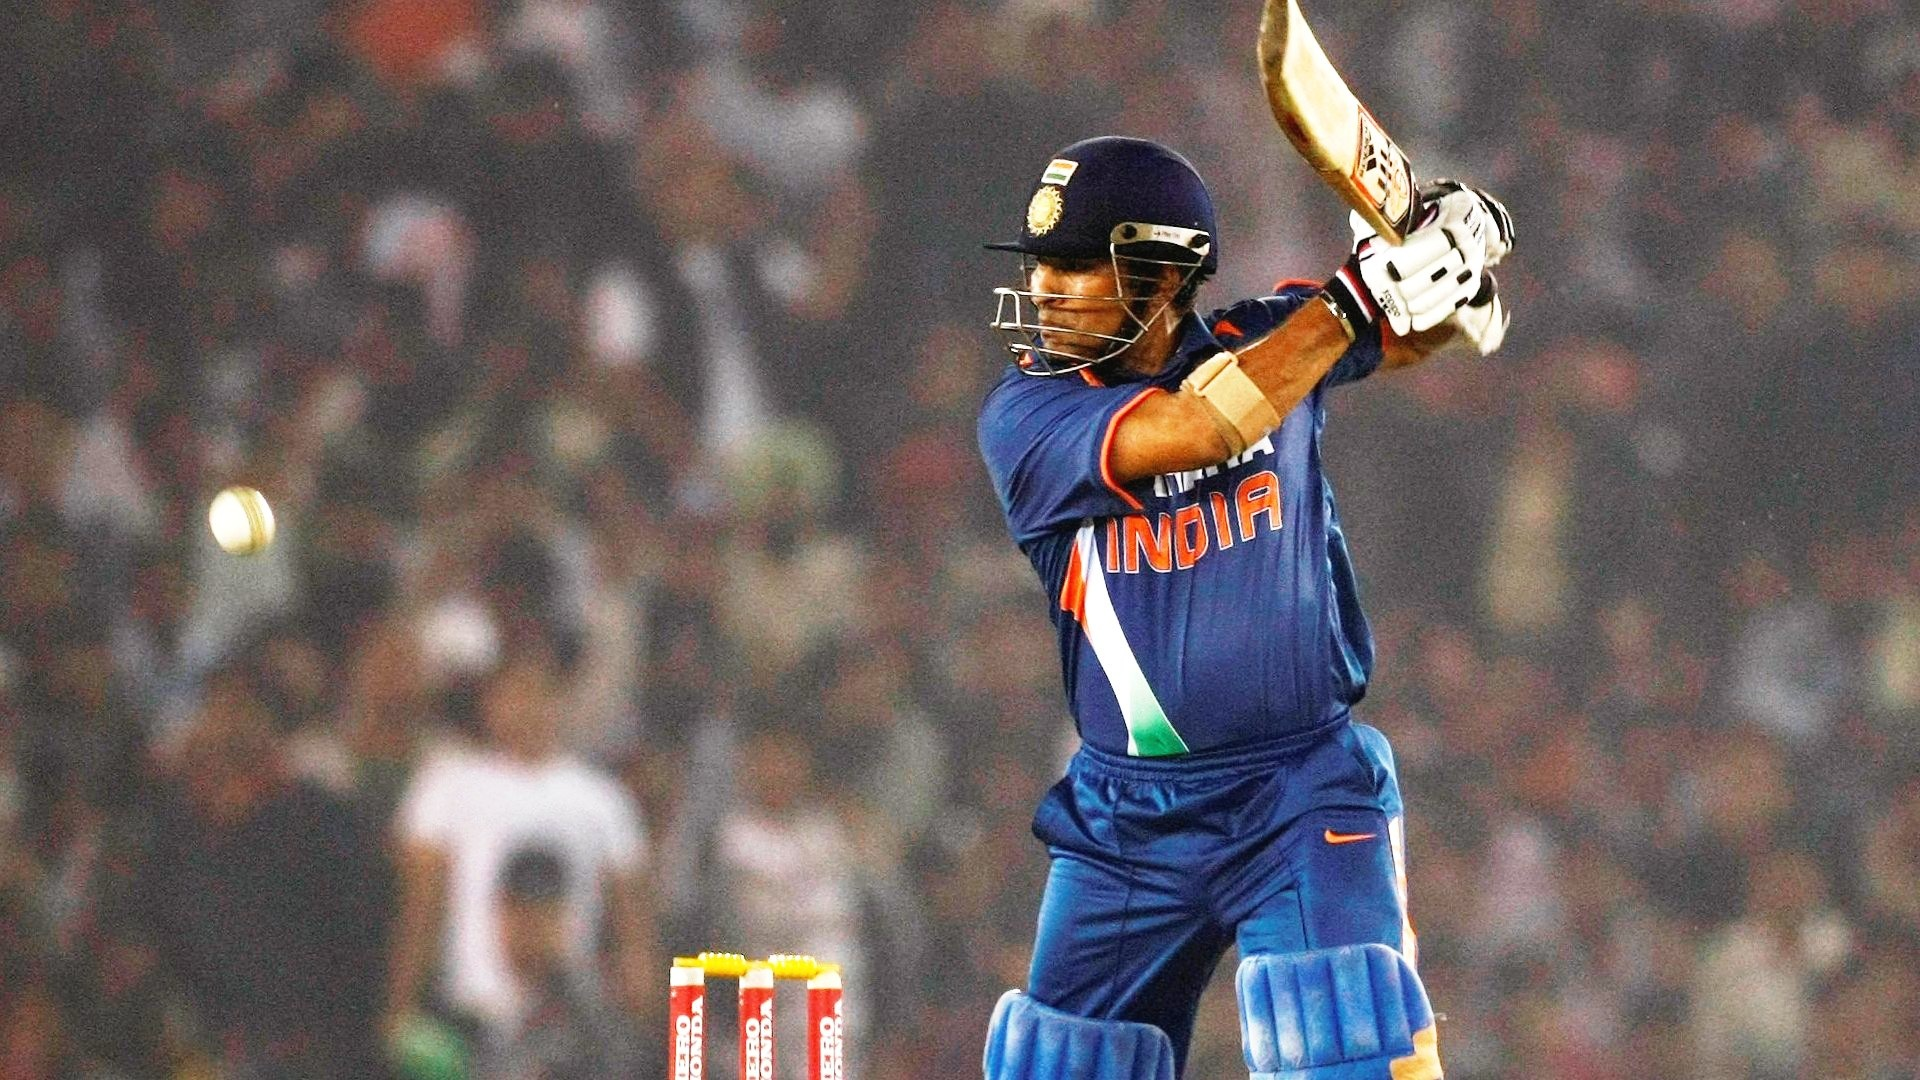 sachin tendulkar batting wallpapers - 1920x1080 - 669814